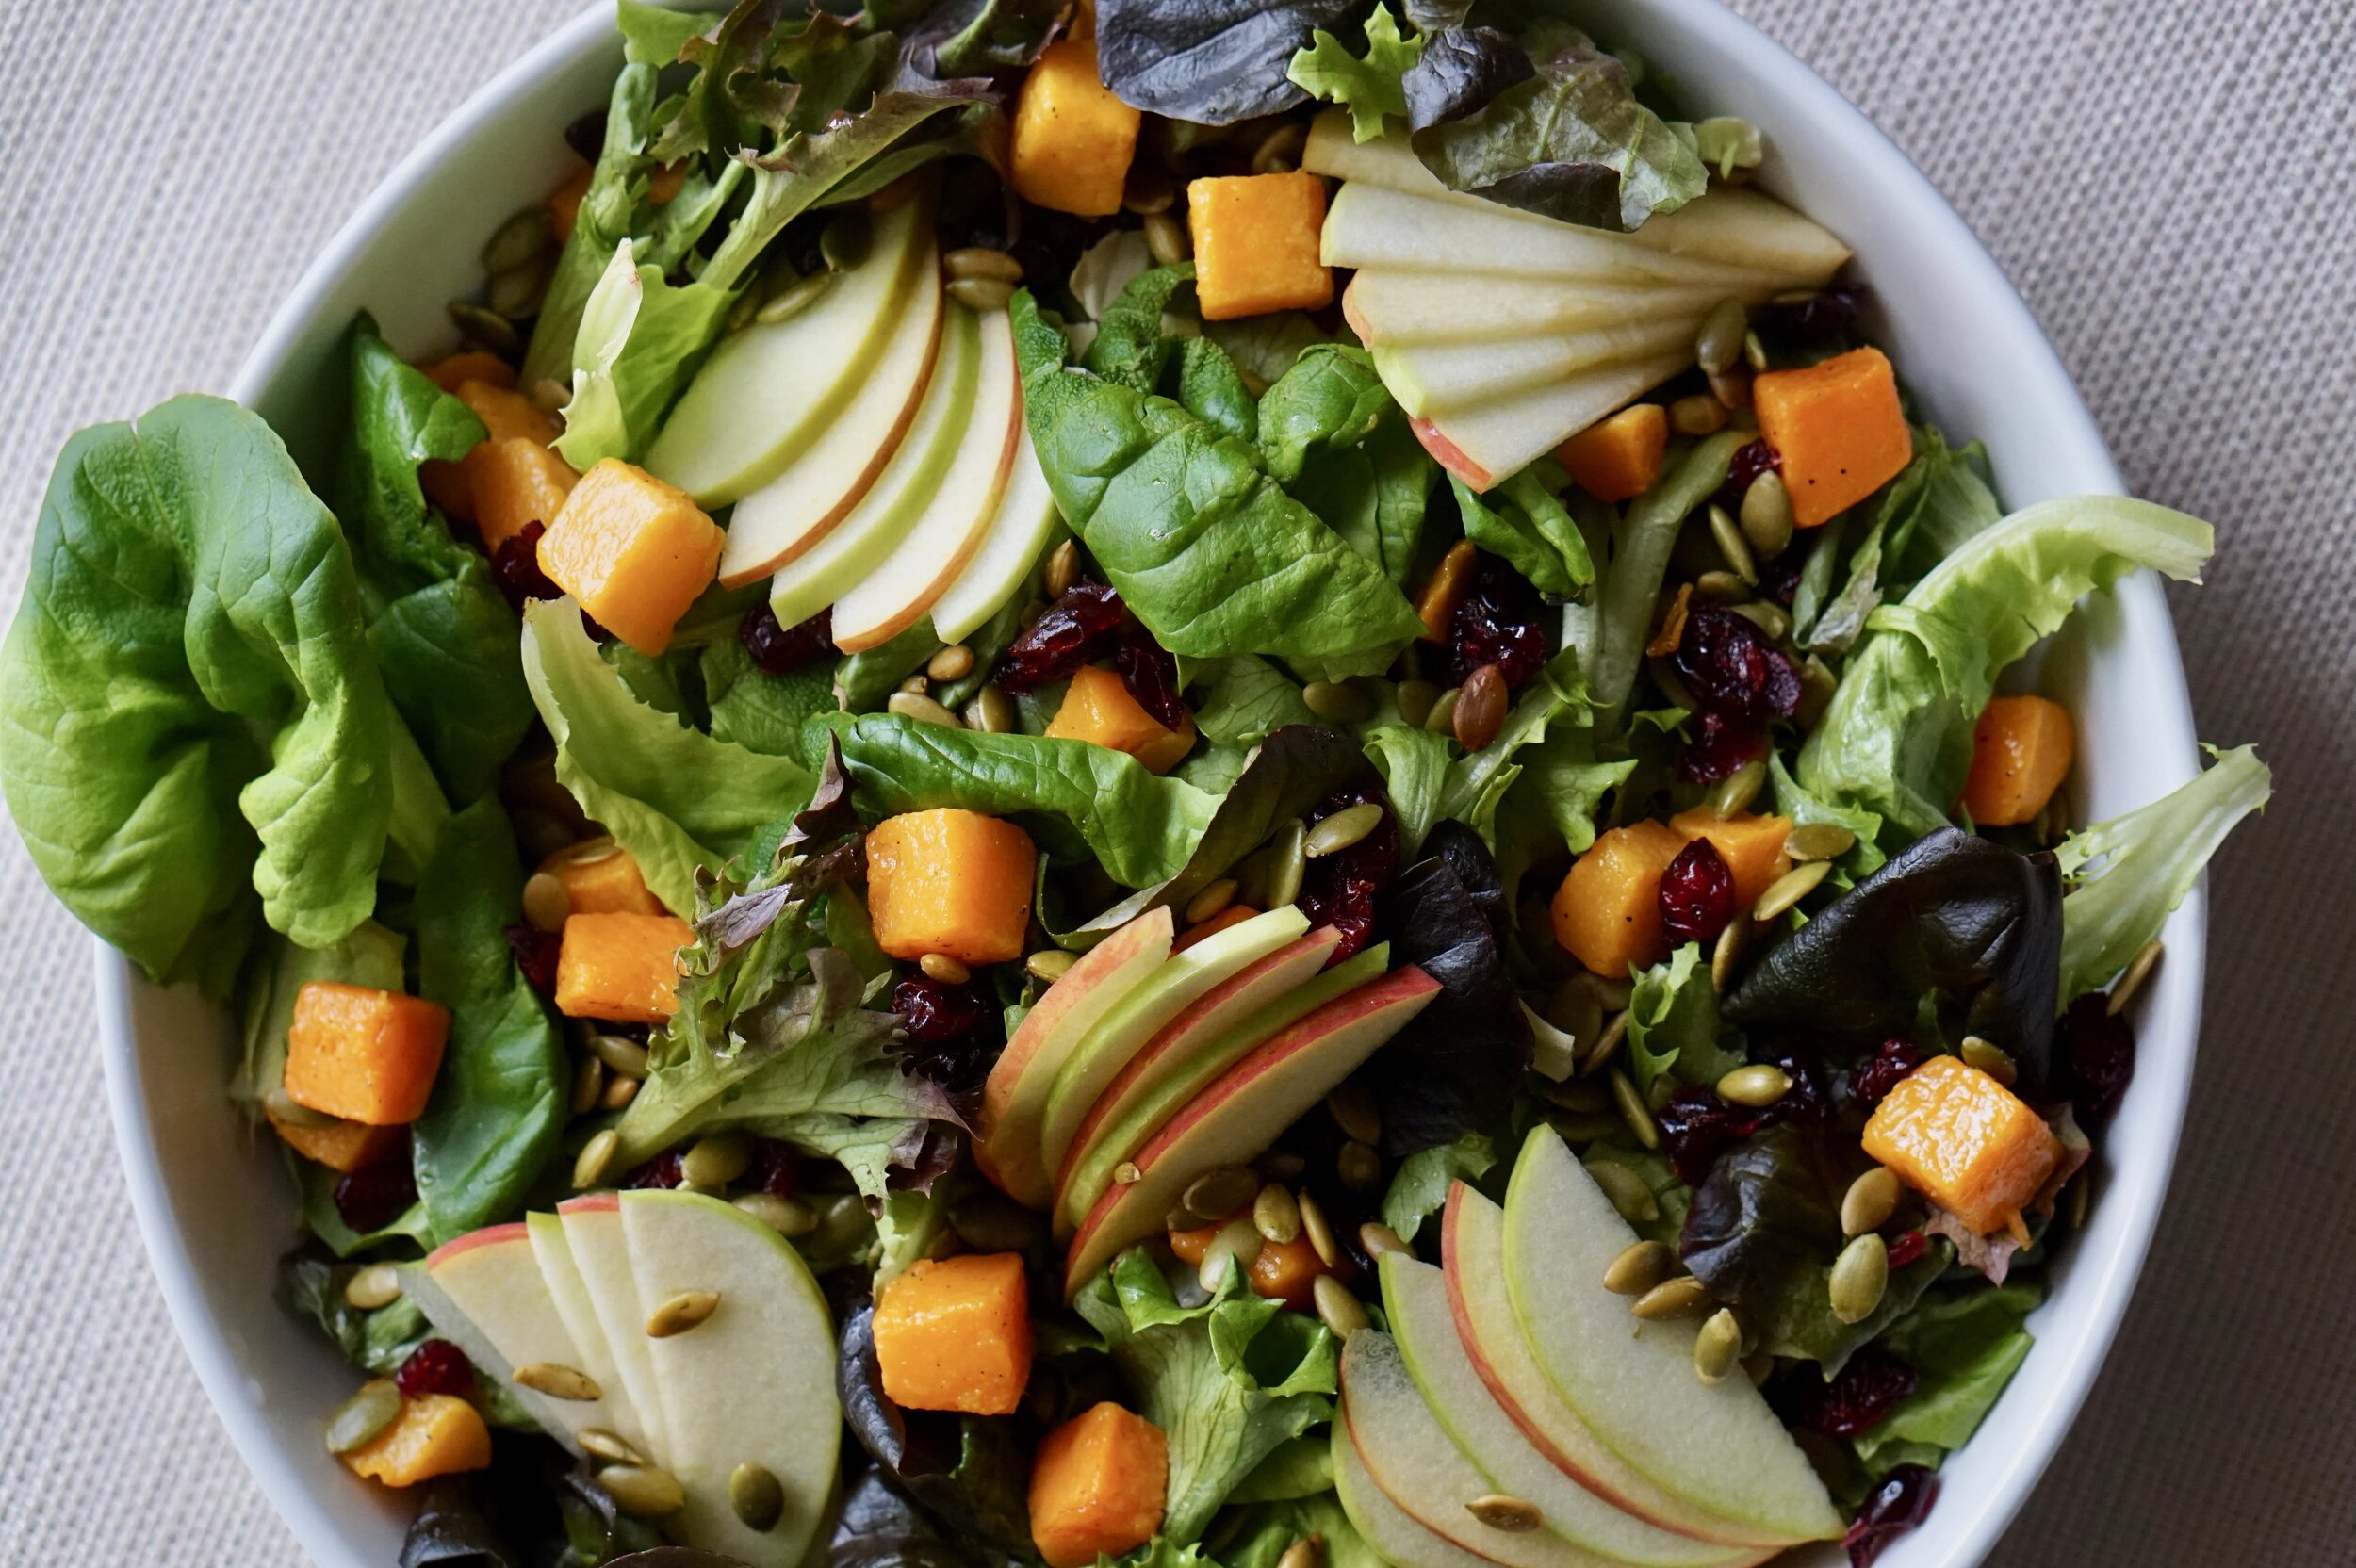 A perfect healthy addition to Thanksgiving dinner, or any fall meal, this salad combines all the best flavors of autumn with fresh, local greens.